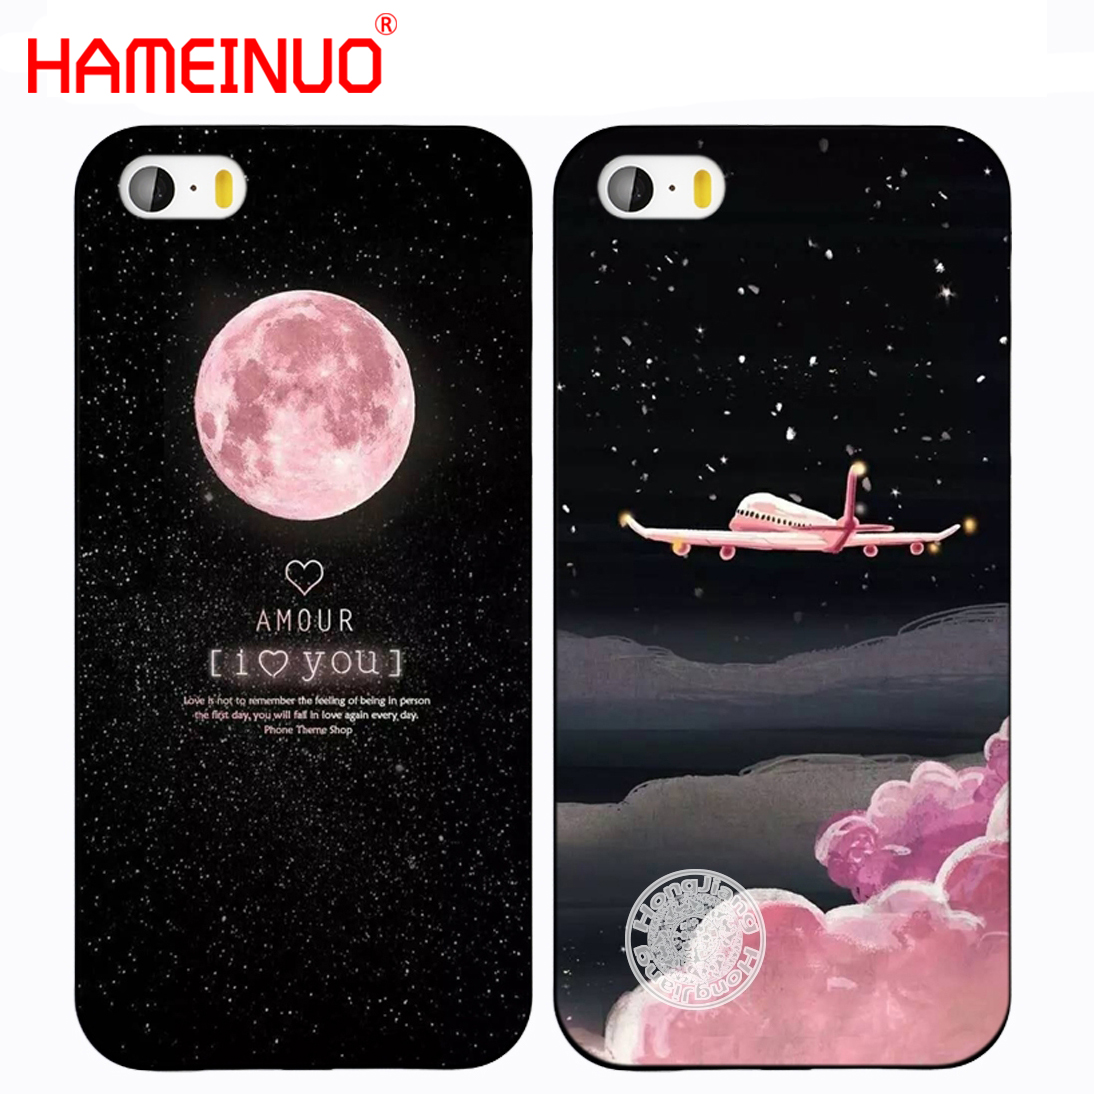 HAMEINUO Space Moon zrakoplova air plane love night print sjedalo za telefon iphone 5 5S SE black hard PC design for girl lady